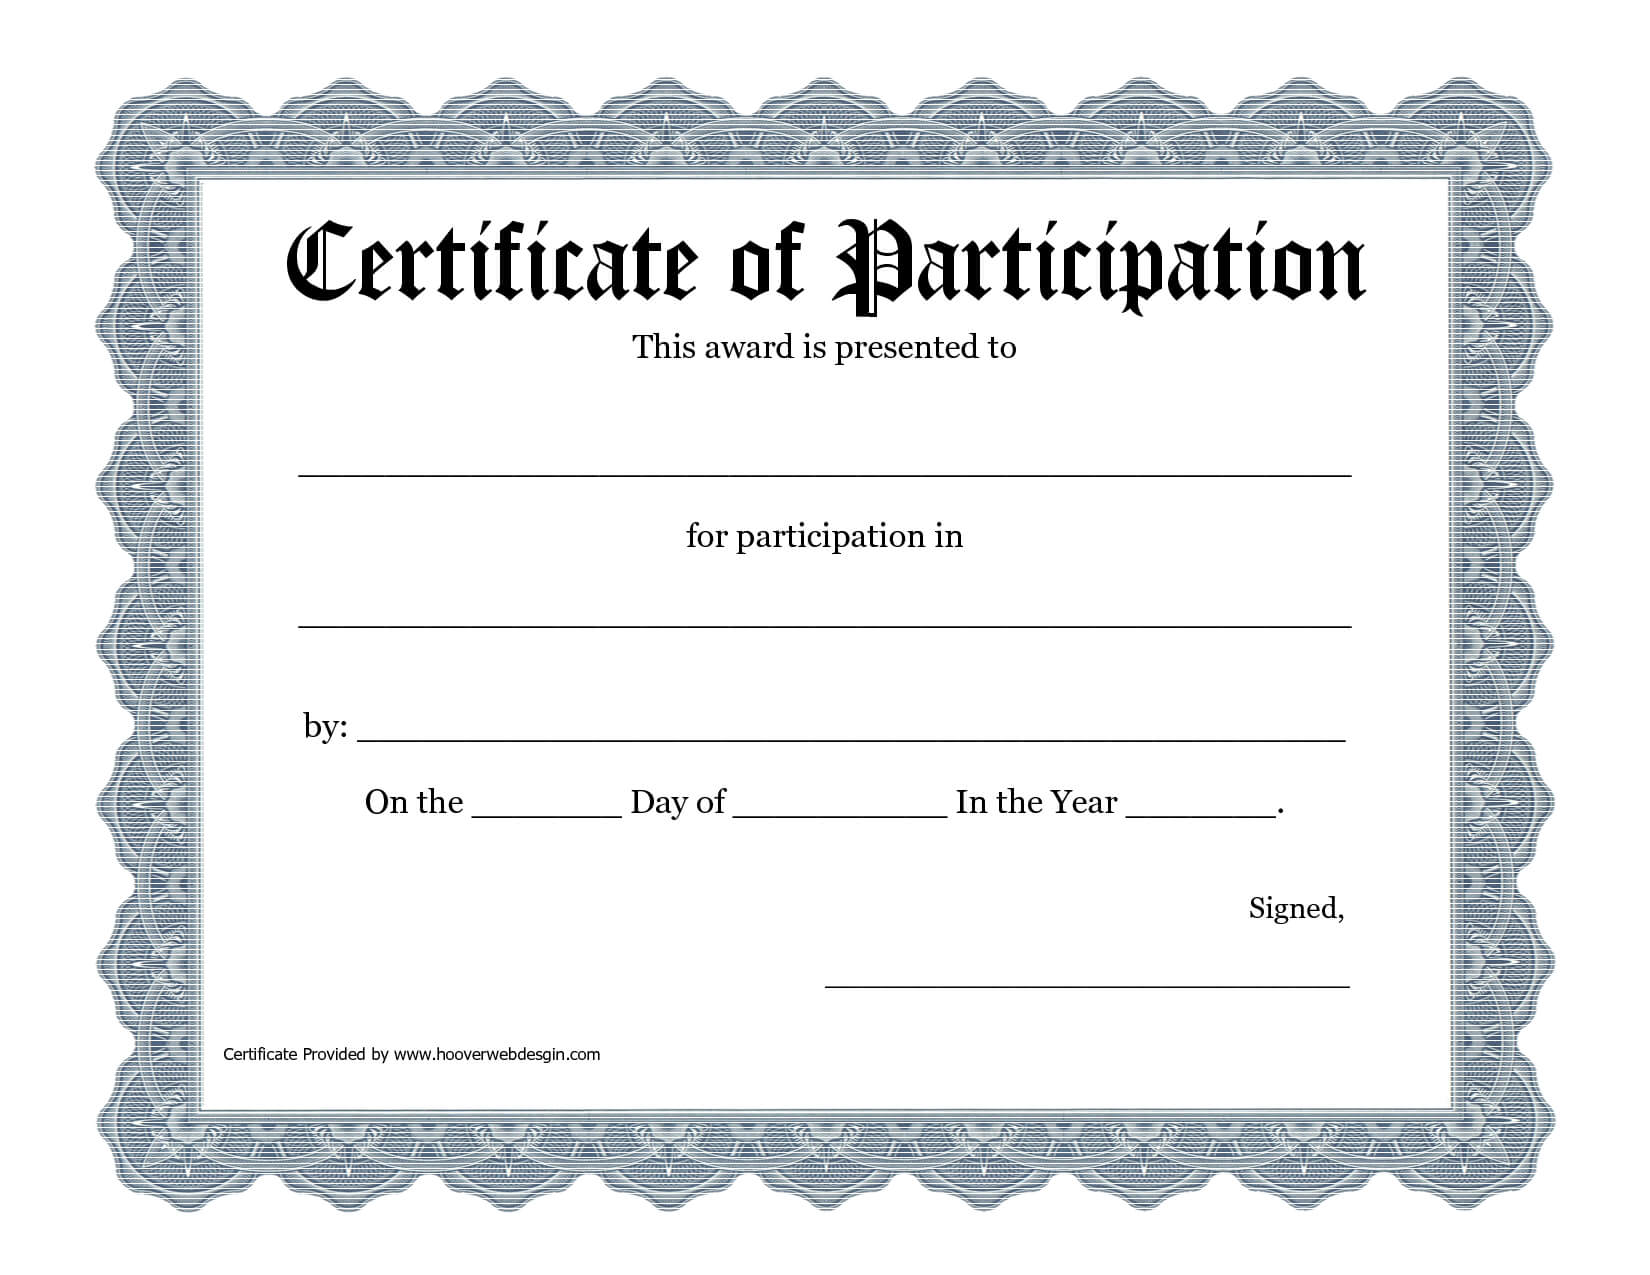 Free Printable Award Certificate Template - Bing Images In Certificate Of Participation Template Pdf